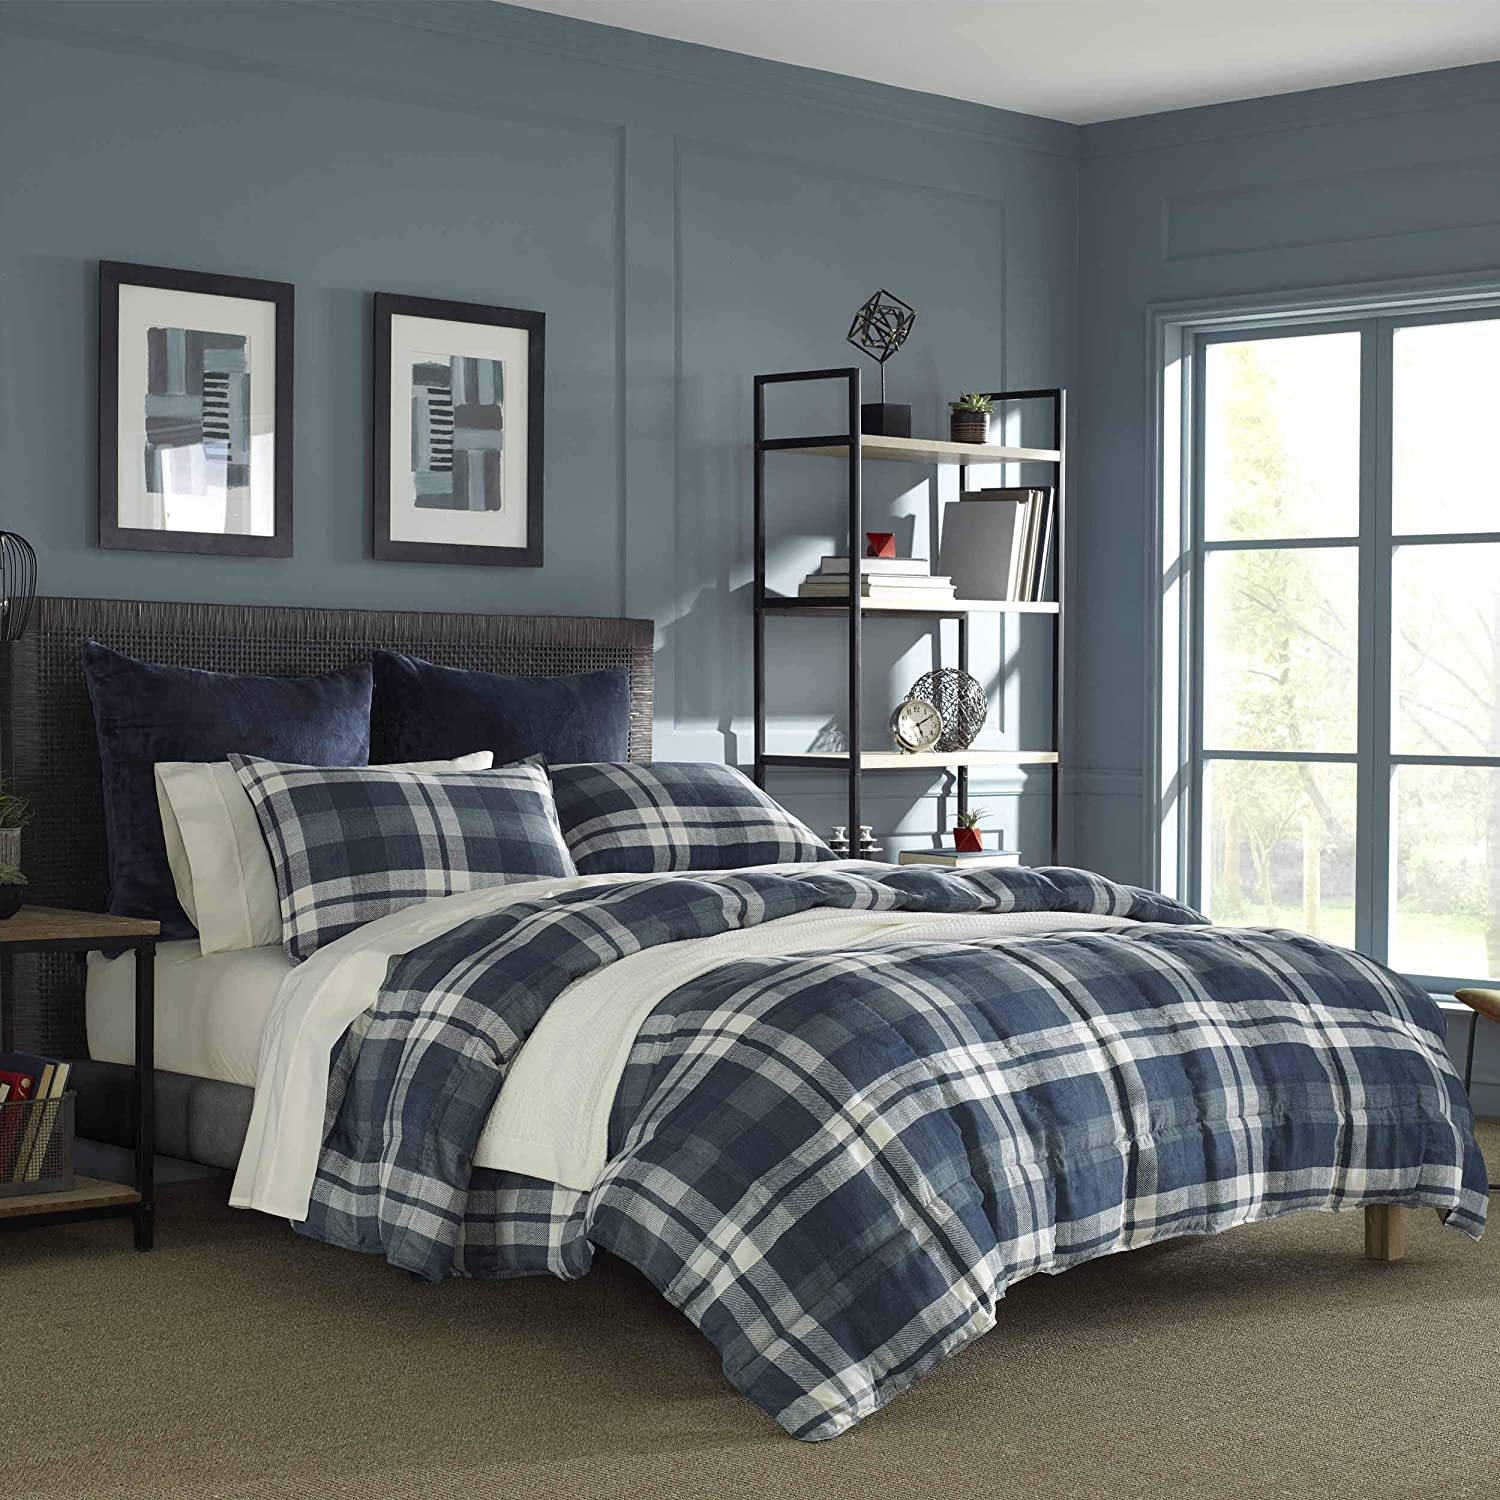 Nautica Crossview Plaid Comforter Set, Full/Queen, Navy